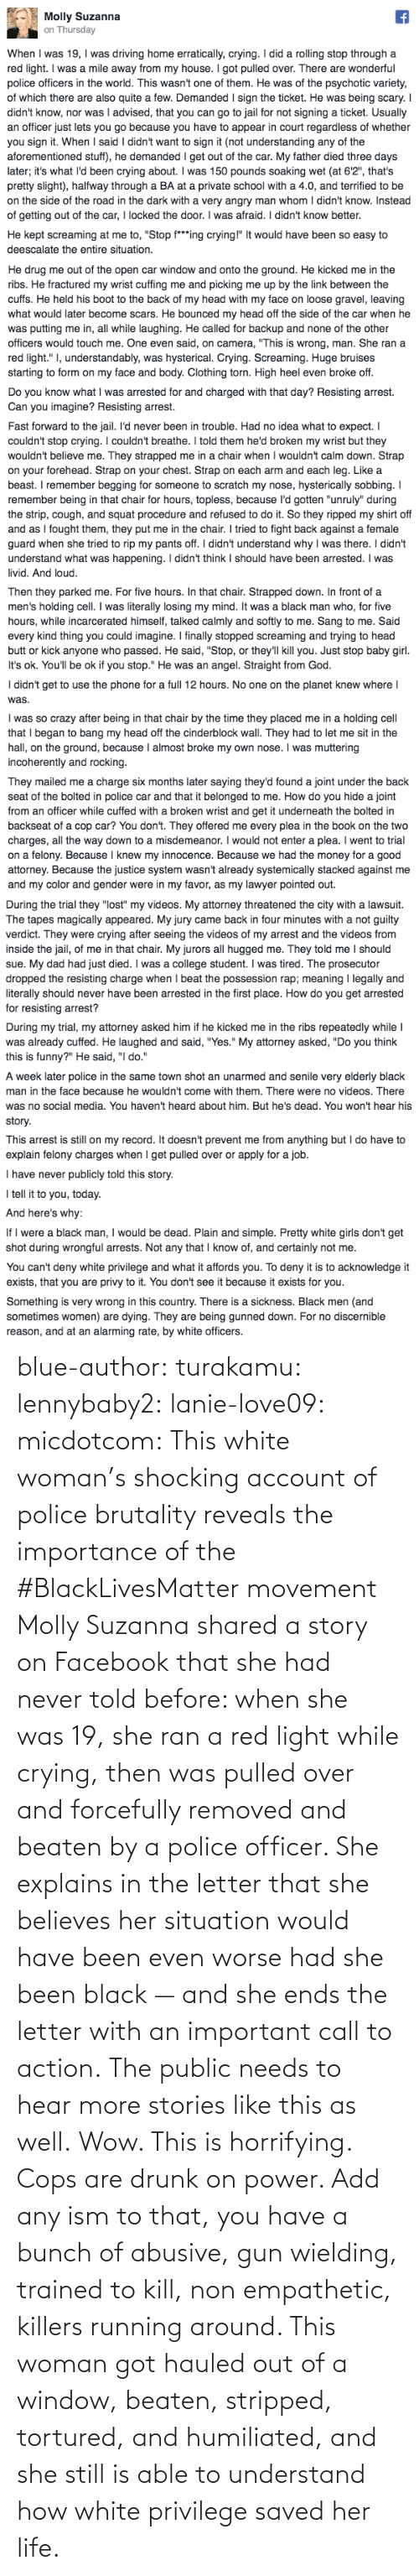 Bunch Of: blue-author: turakamu:  lennybaby2:  lanie-love09:  micdotcom:  This white woman's shocking account of police brutality reveals the importance of the #BlackLivesMatter movement Molly Suzanna shared a story on Facebook that she had never told before: when she was 19, she ran a red light while crying, then was pulled over and forcefully removed and beaten by a police officer. She explains in the letter that she believes her situation would have been even worse had she been black — and she ends the letter with an important call to action.  The public needs to hear more stories like this as well.  Wow. This is horrifying.  Cops are drunk on power. Add any ism to that, you have a bunch of abusive, gun wielding, trained to kill, non empathetic, killers running around.    This woman got hauled out of a window, beaten, stripped, tortured, and humiliated, and she still is able to understand how white privilege saved her life.